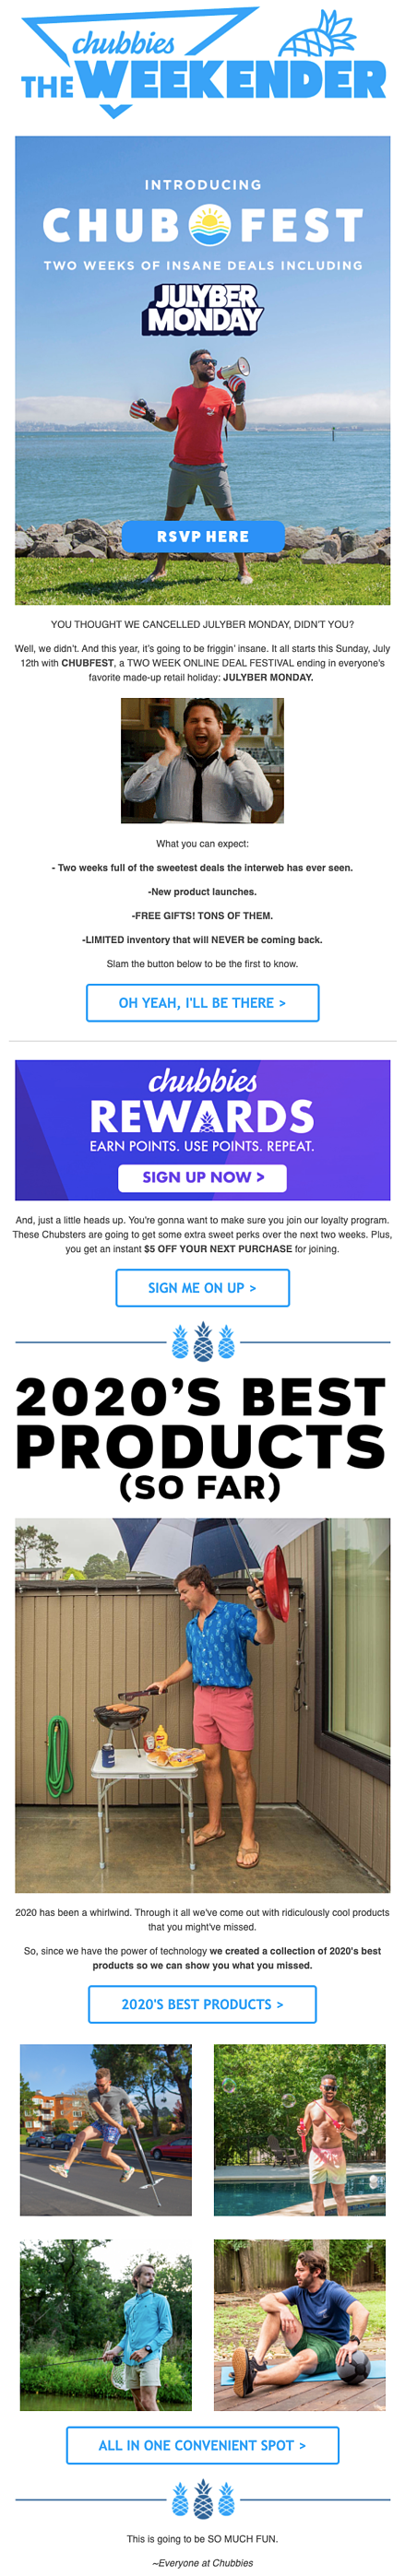 brand awareness email example